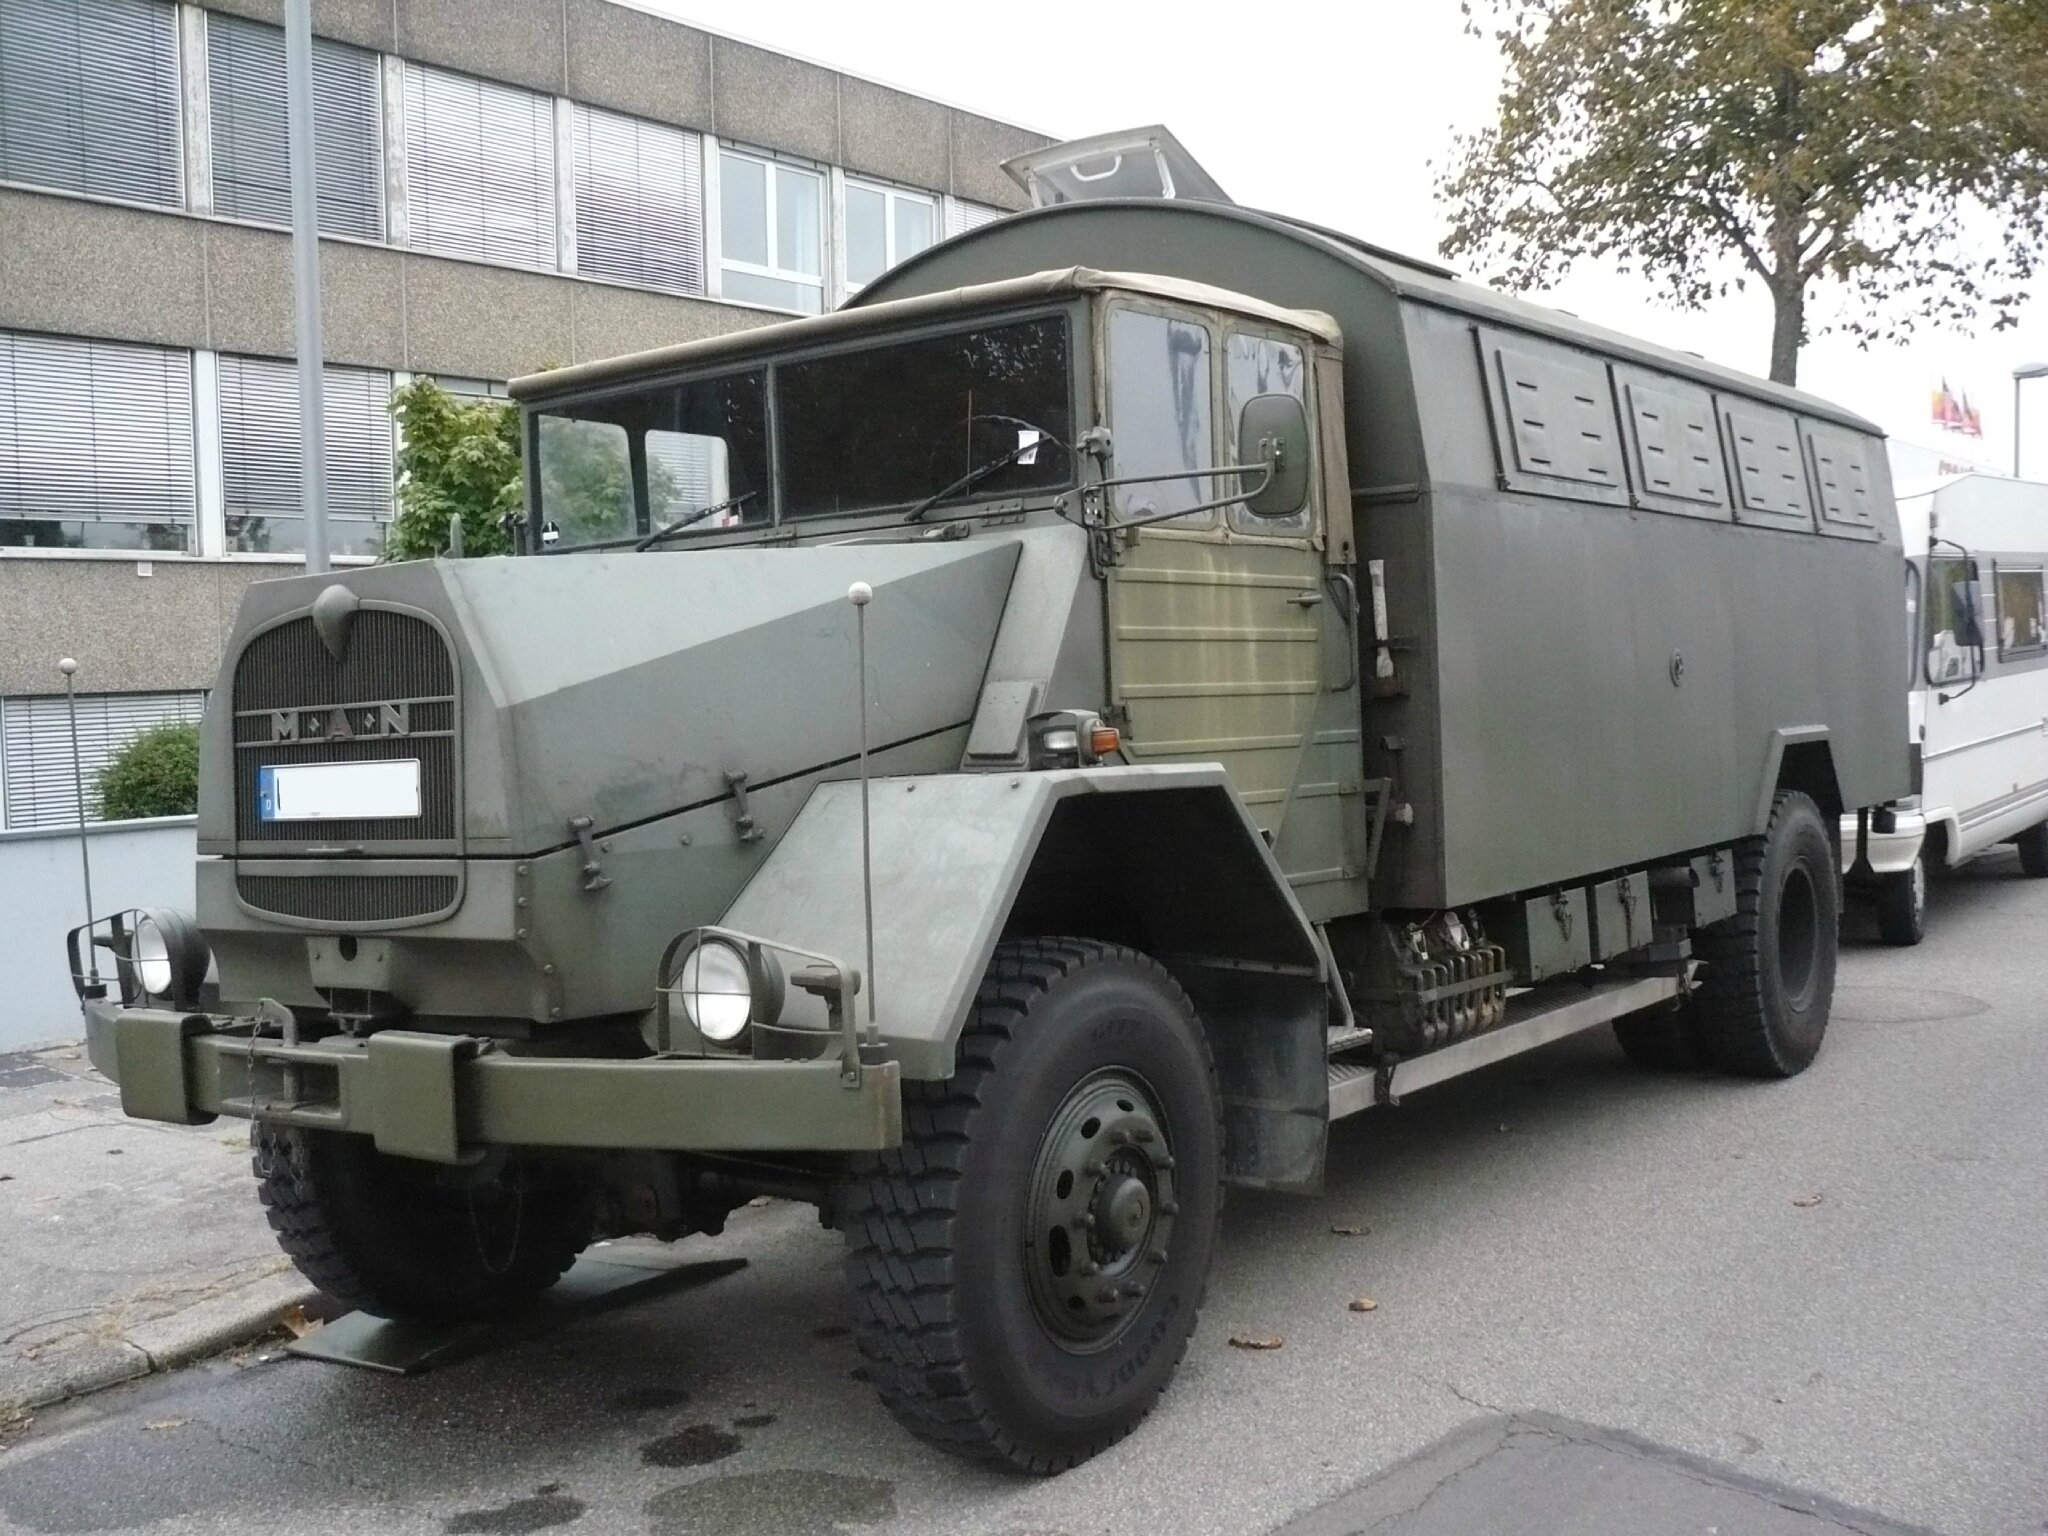 man 630 l2a camion militaire de transport de troupes mannheim 1 photo de 103 veterama et. Black Bedroom Furniture Sets. Home Design Ideas